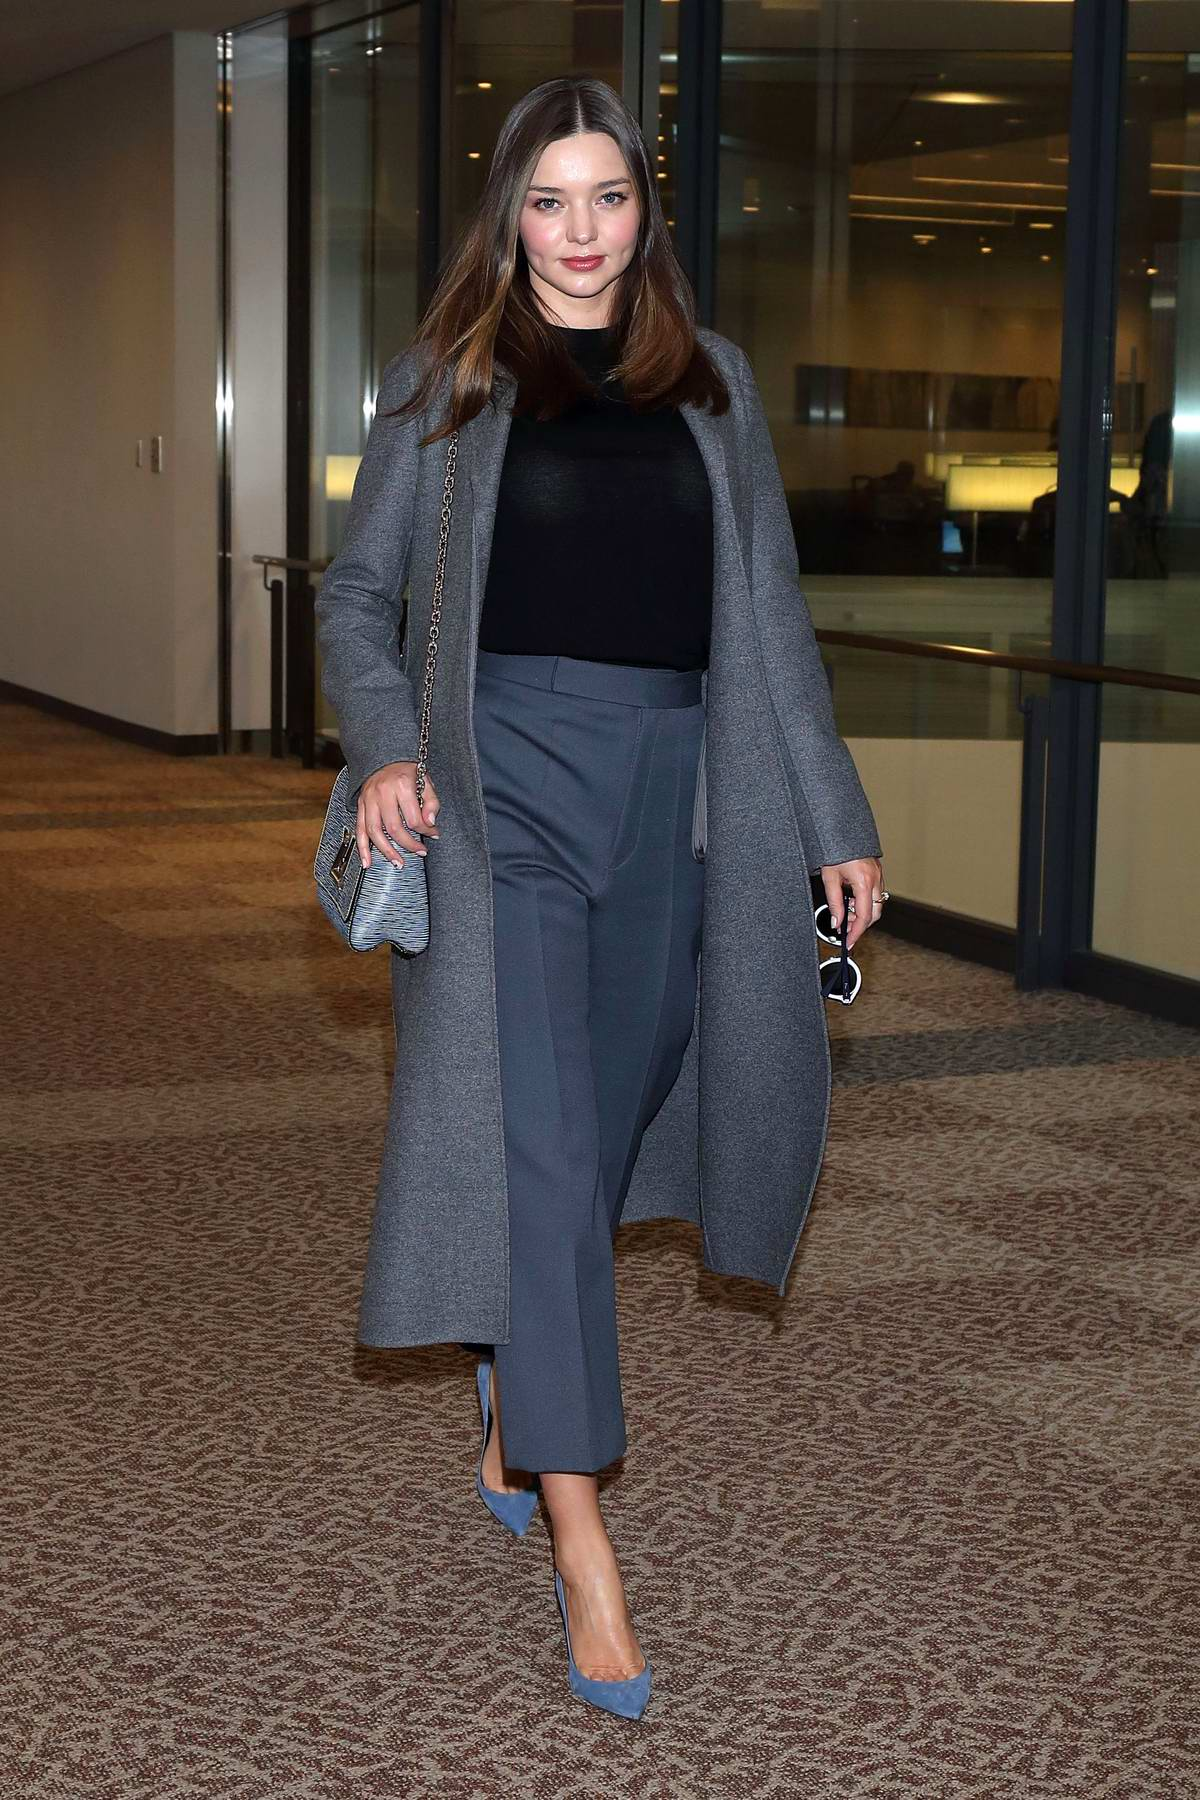 Miranda Kerr looks chic as she arrives at Narita International Airport in Tokyo, Japan